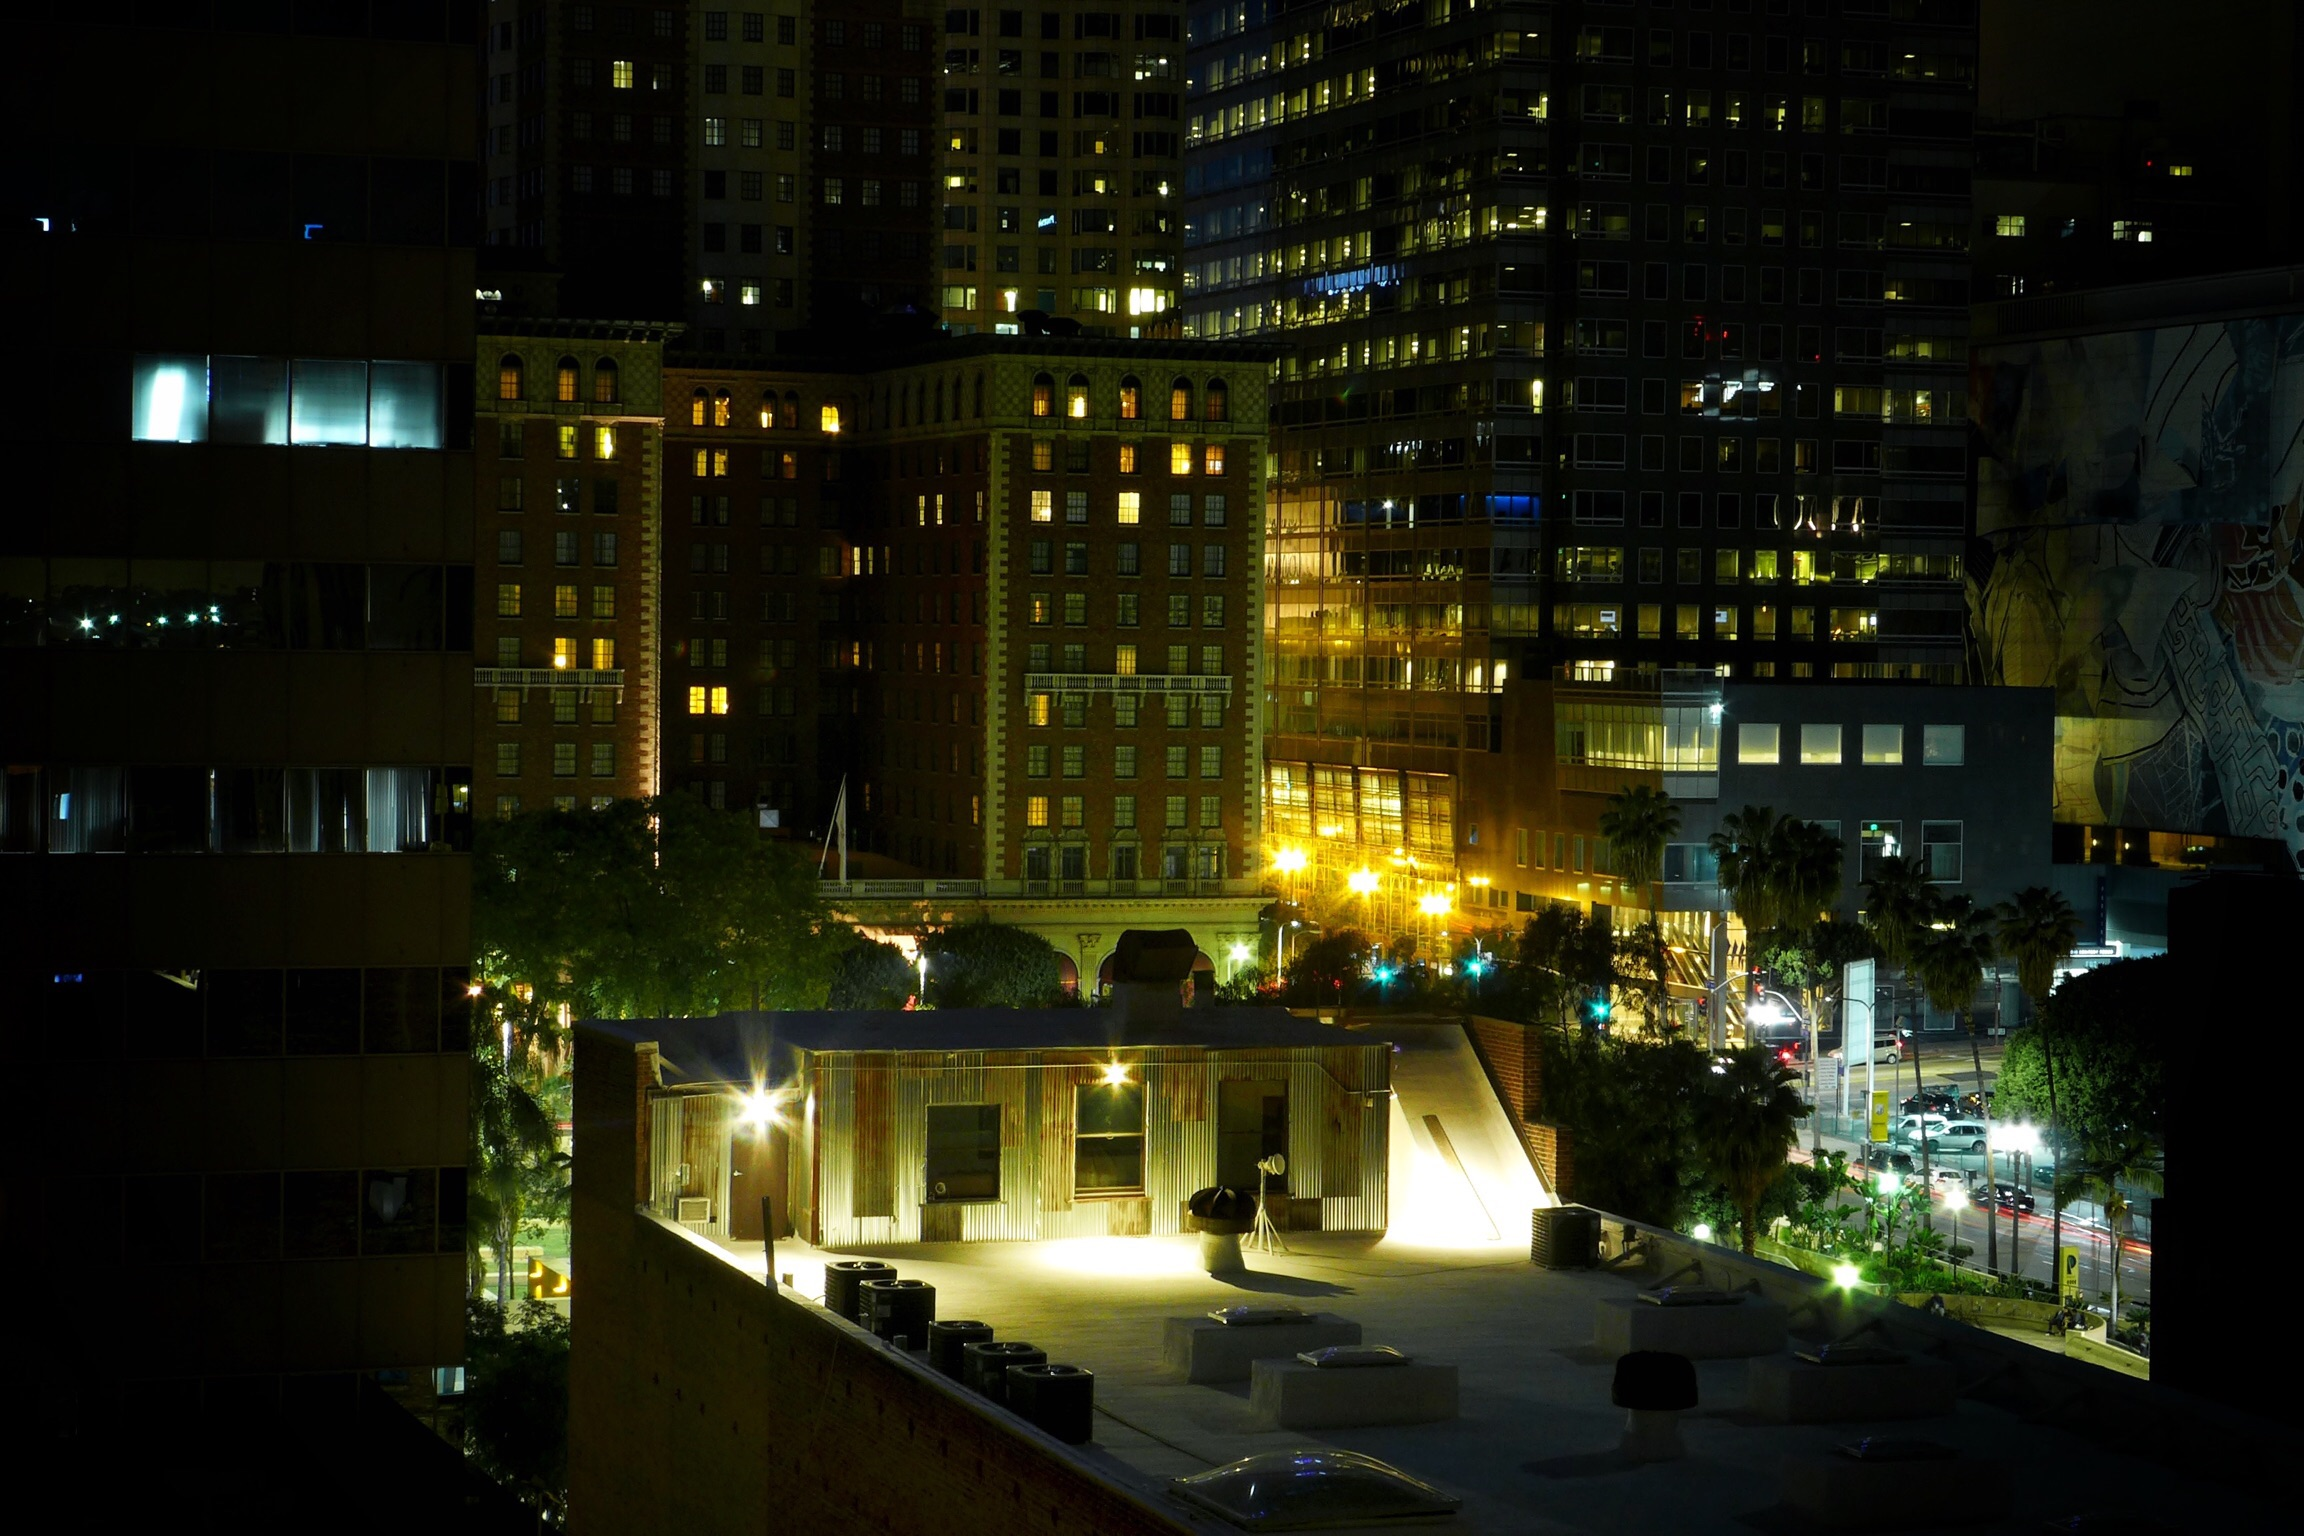 Shot without a tripod from the fire escape, using an old Leica D-Lux 6